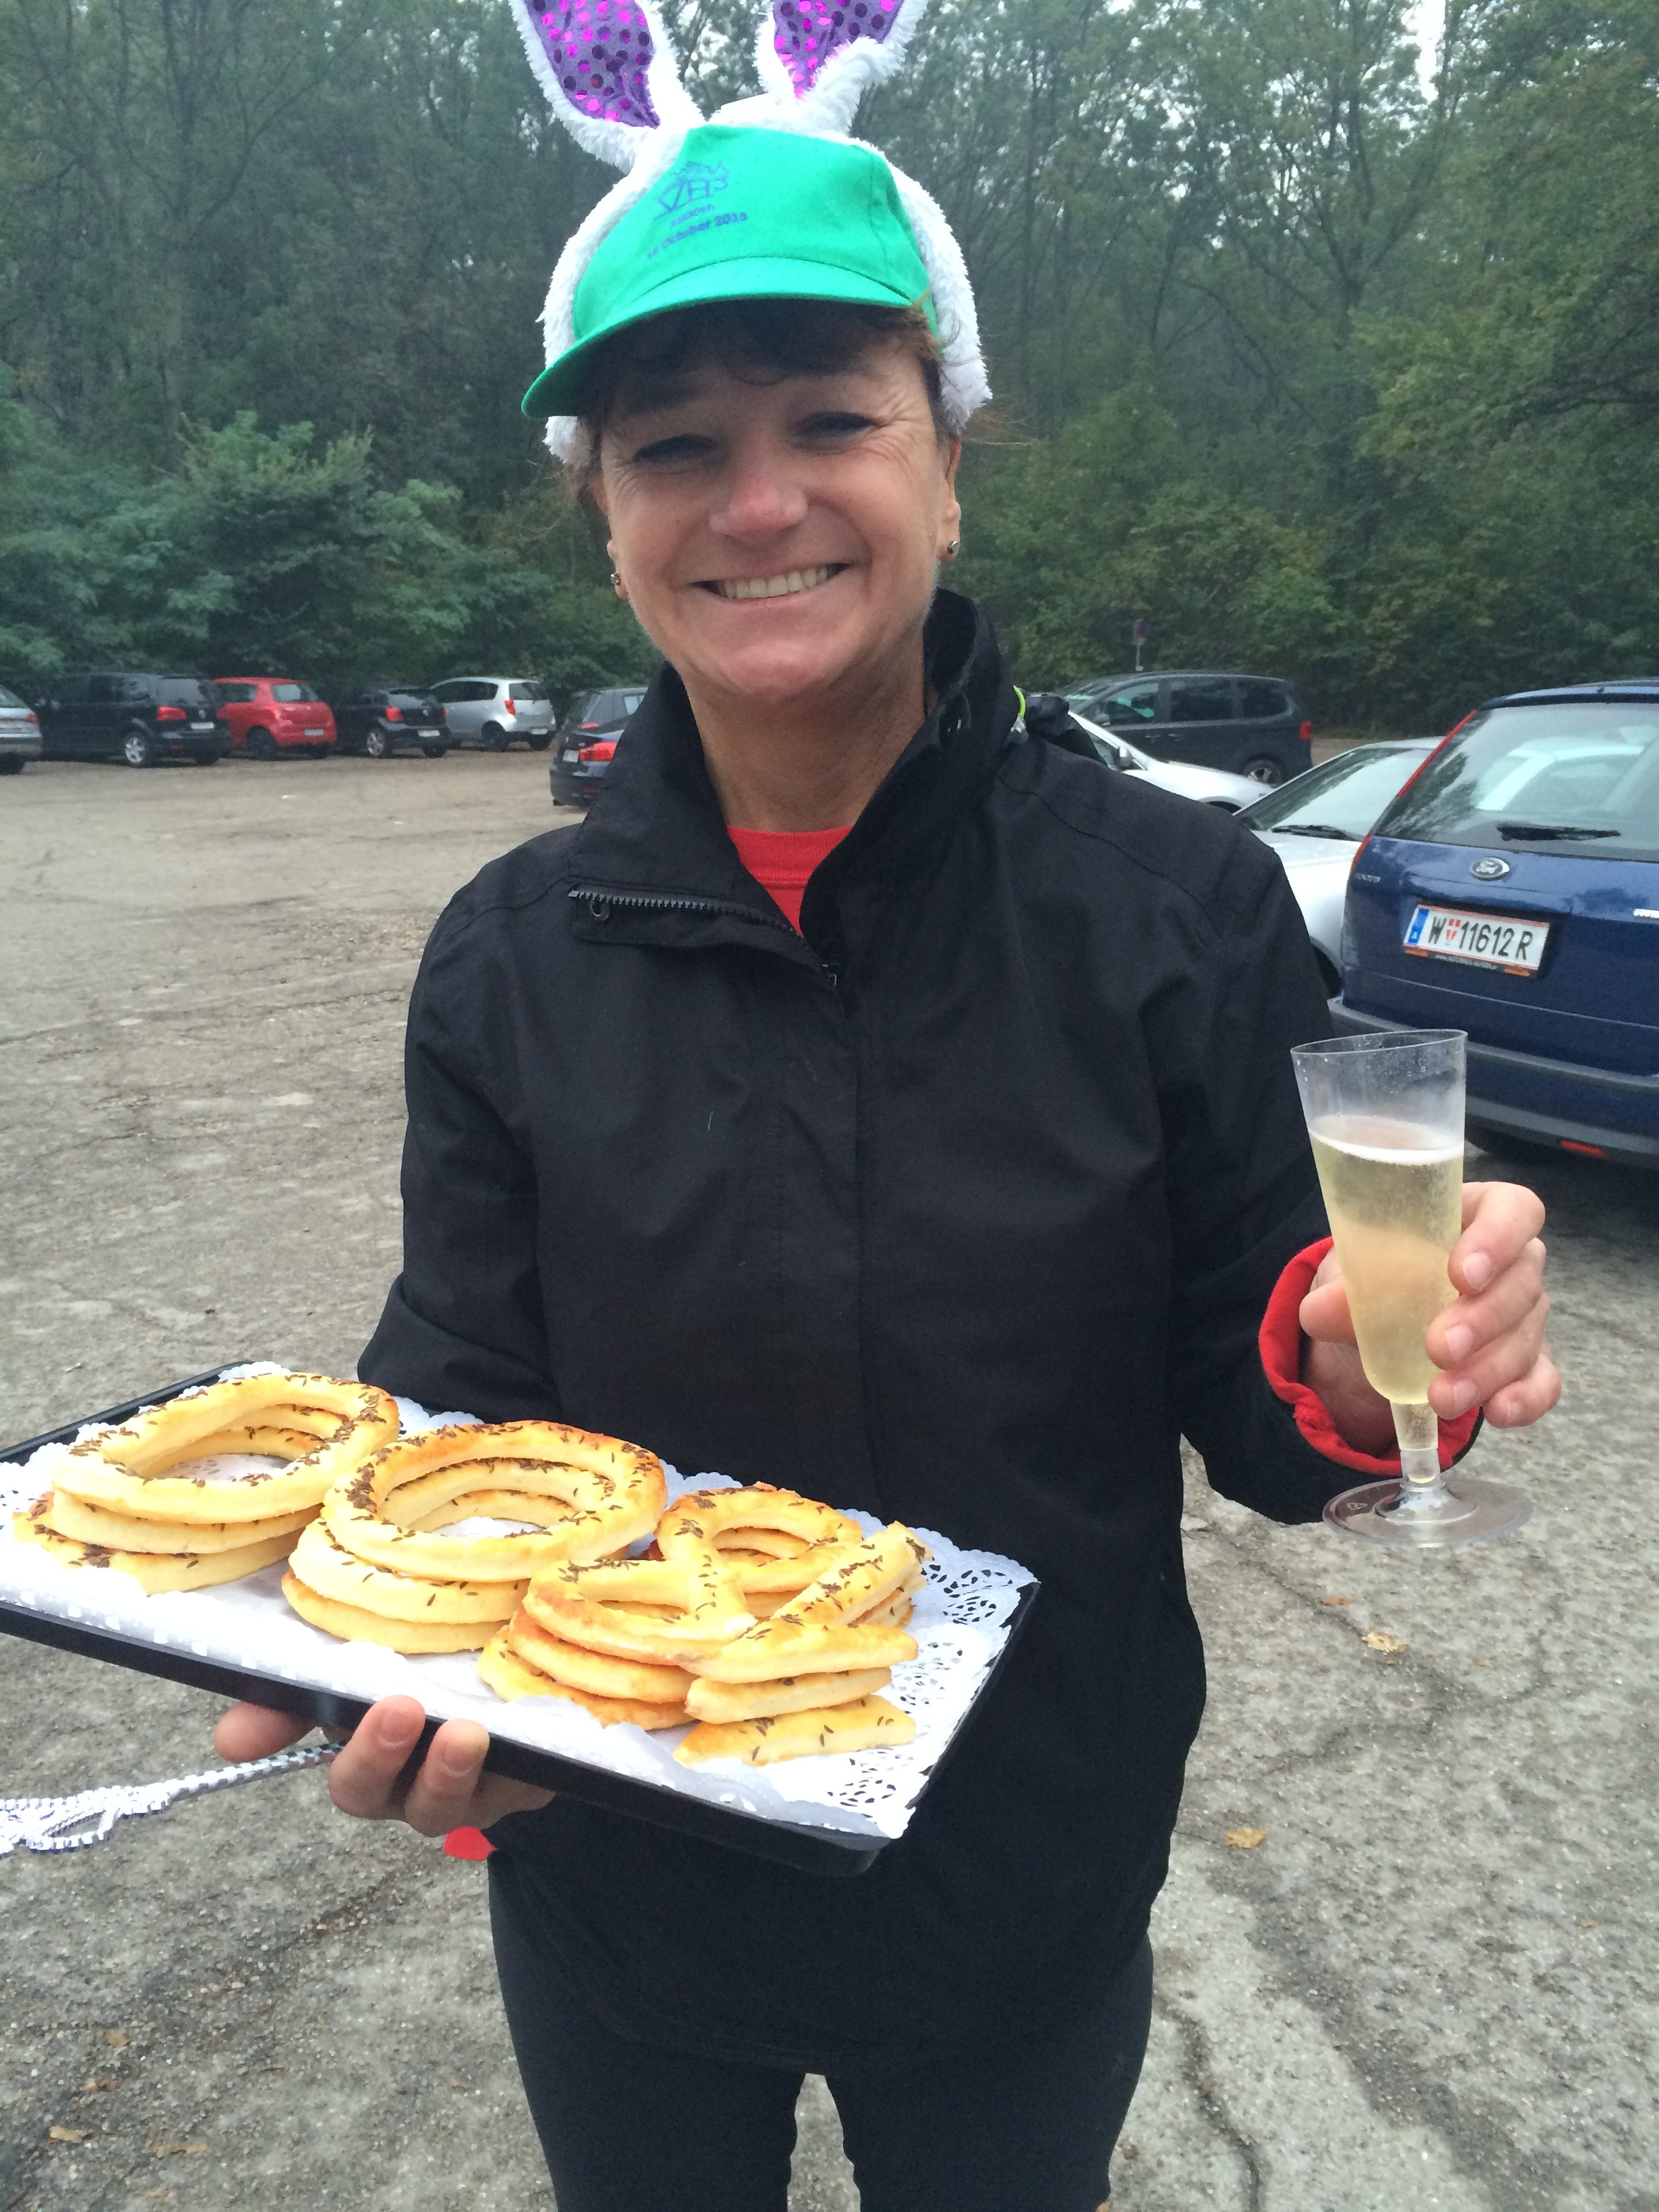 """If you're traveling and want to go for a run with like-minded folks, google Hash House Harriers wherever you are. The Vienna group finishes with Sekt - German sparkling wine - and homemade pastries (it was the 1800th hash run)! The """"on after"""" was at  Die Palette  in Bisamberg - delicious pumpkin everything bistro food."""